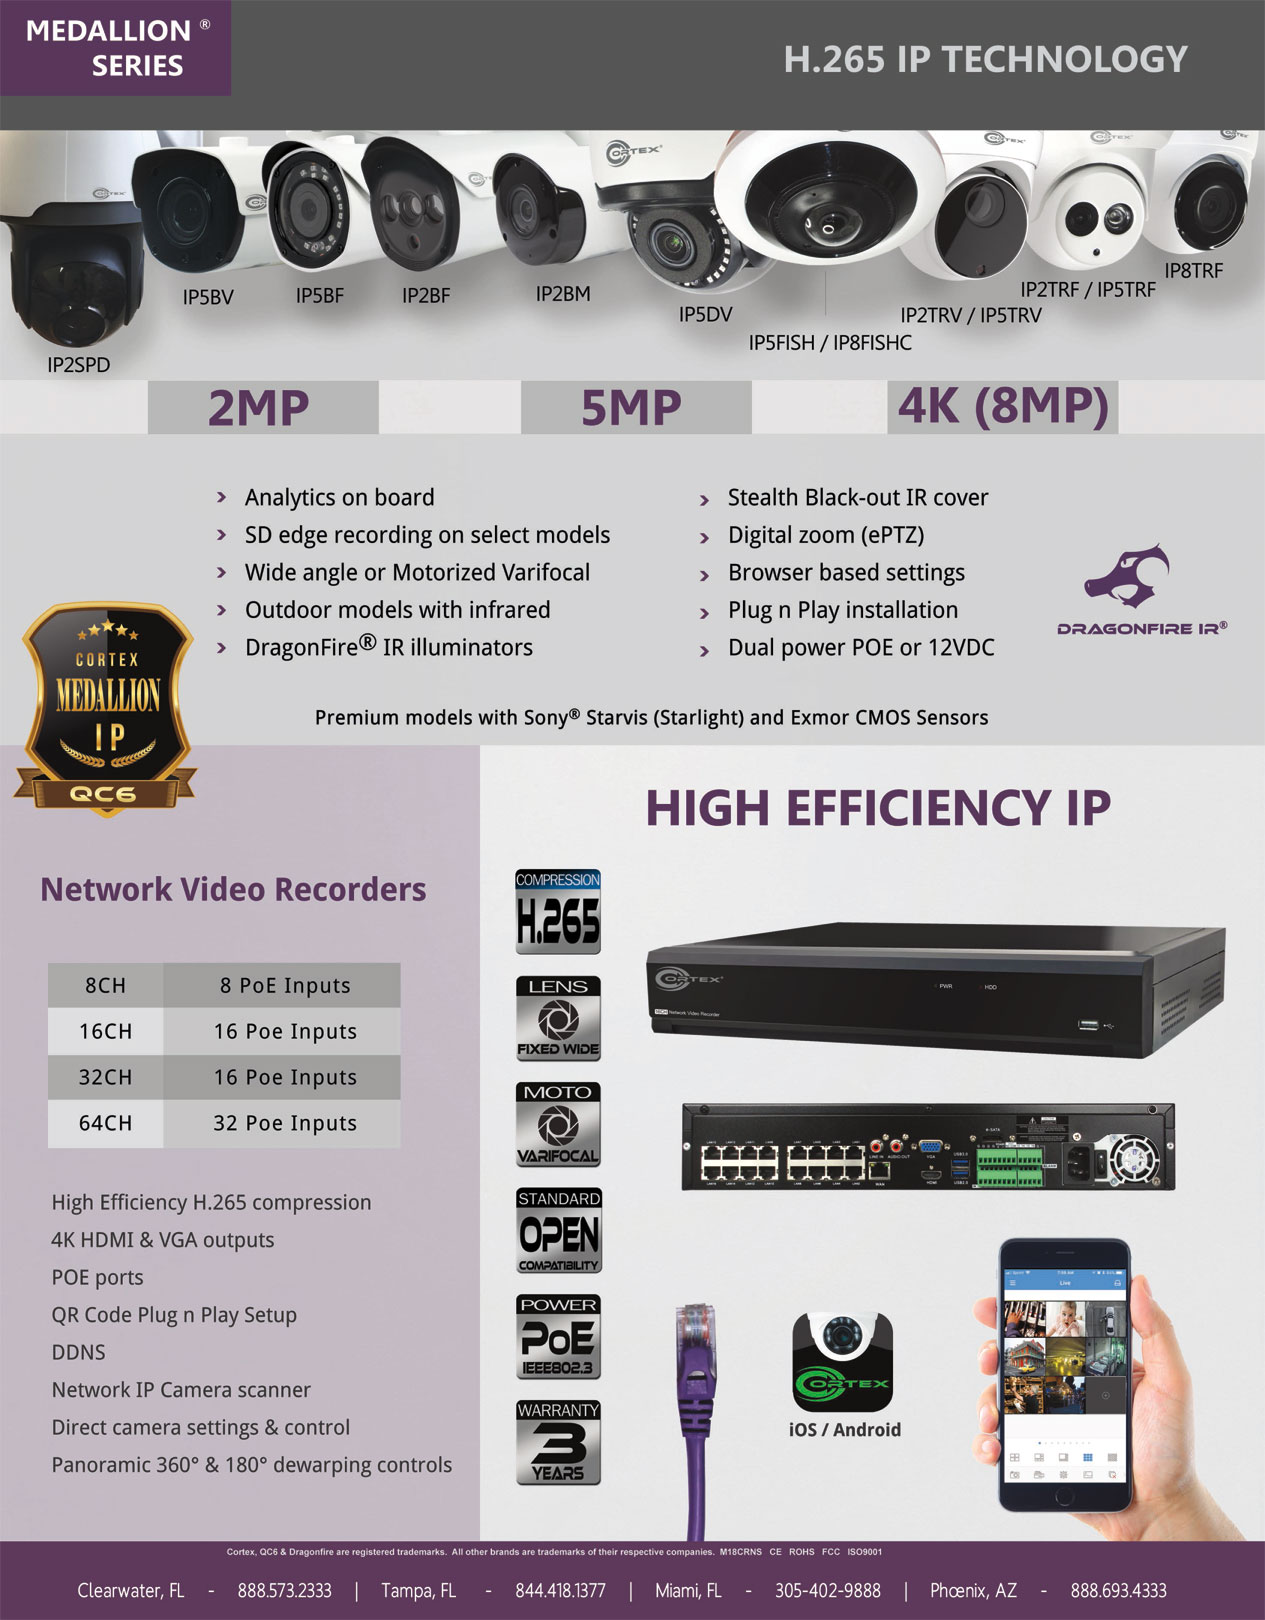 Cortex surveillance security Medallion series Simultaneous HDMI and VGA Output featured netwok technolgy